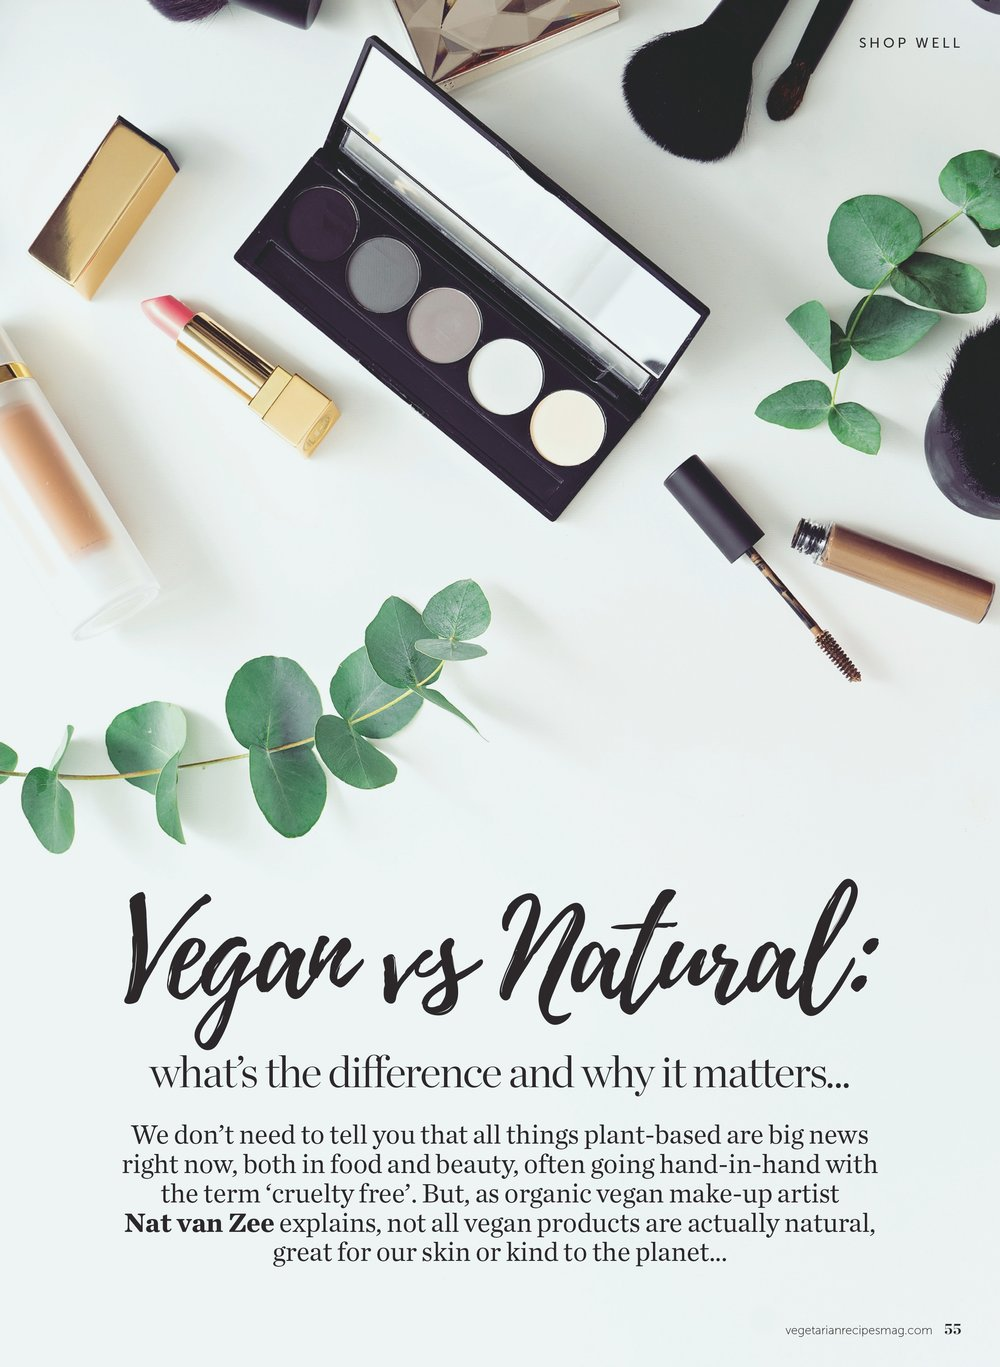 Vegan vs Natural.indd